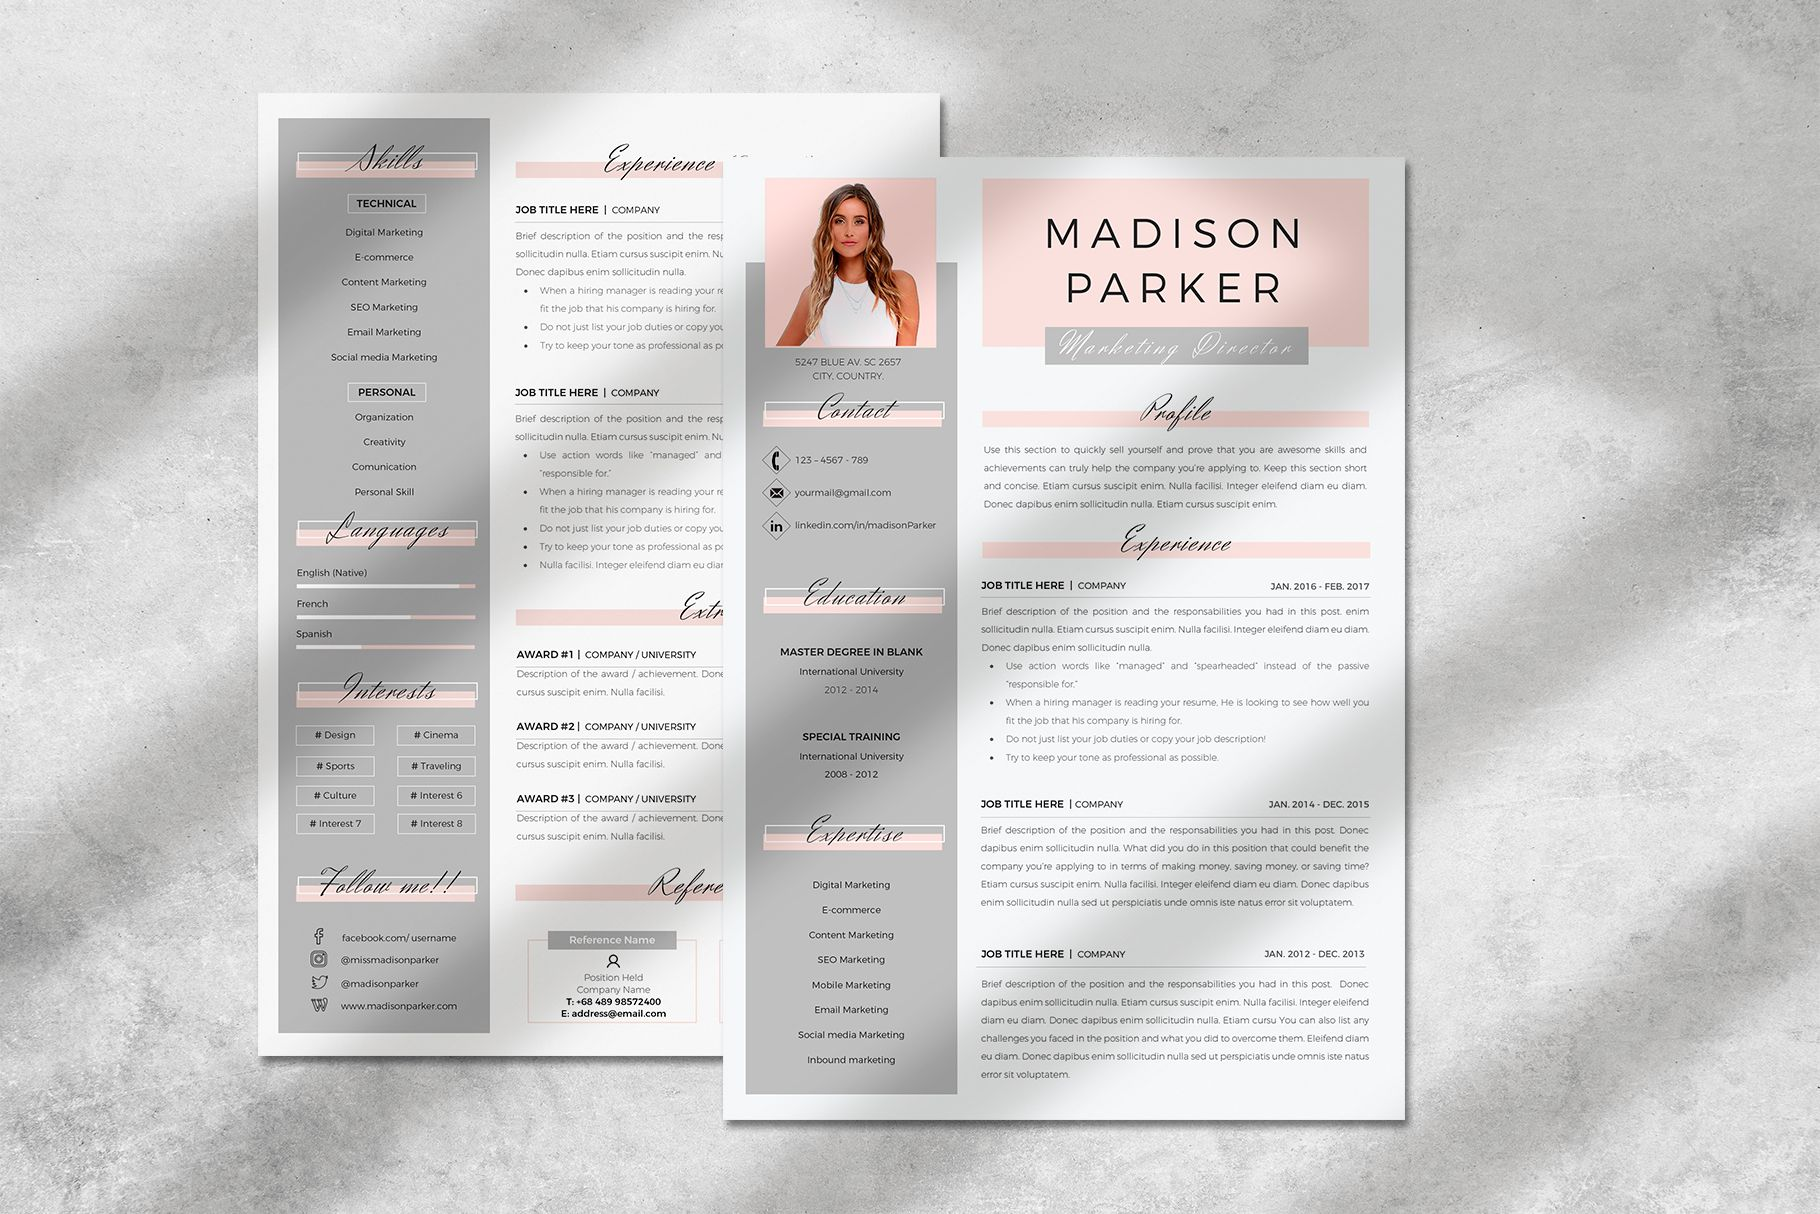 Creative Resume Templates For Ms Word And Mac Pages Professional Resume Templates And Matching Cover Lett Creative Resume Resume Design Resume Design Template Internship resume template microsoft word